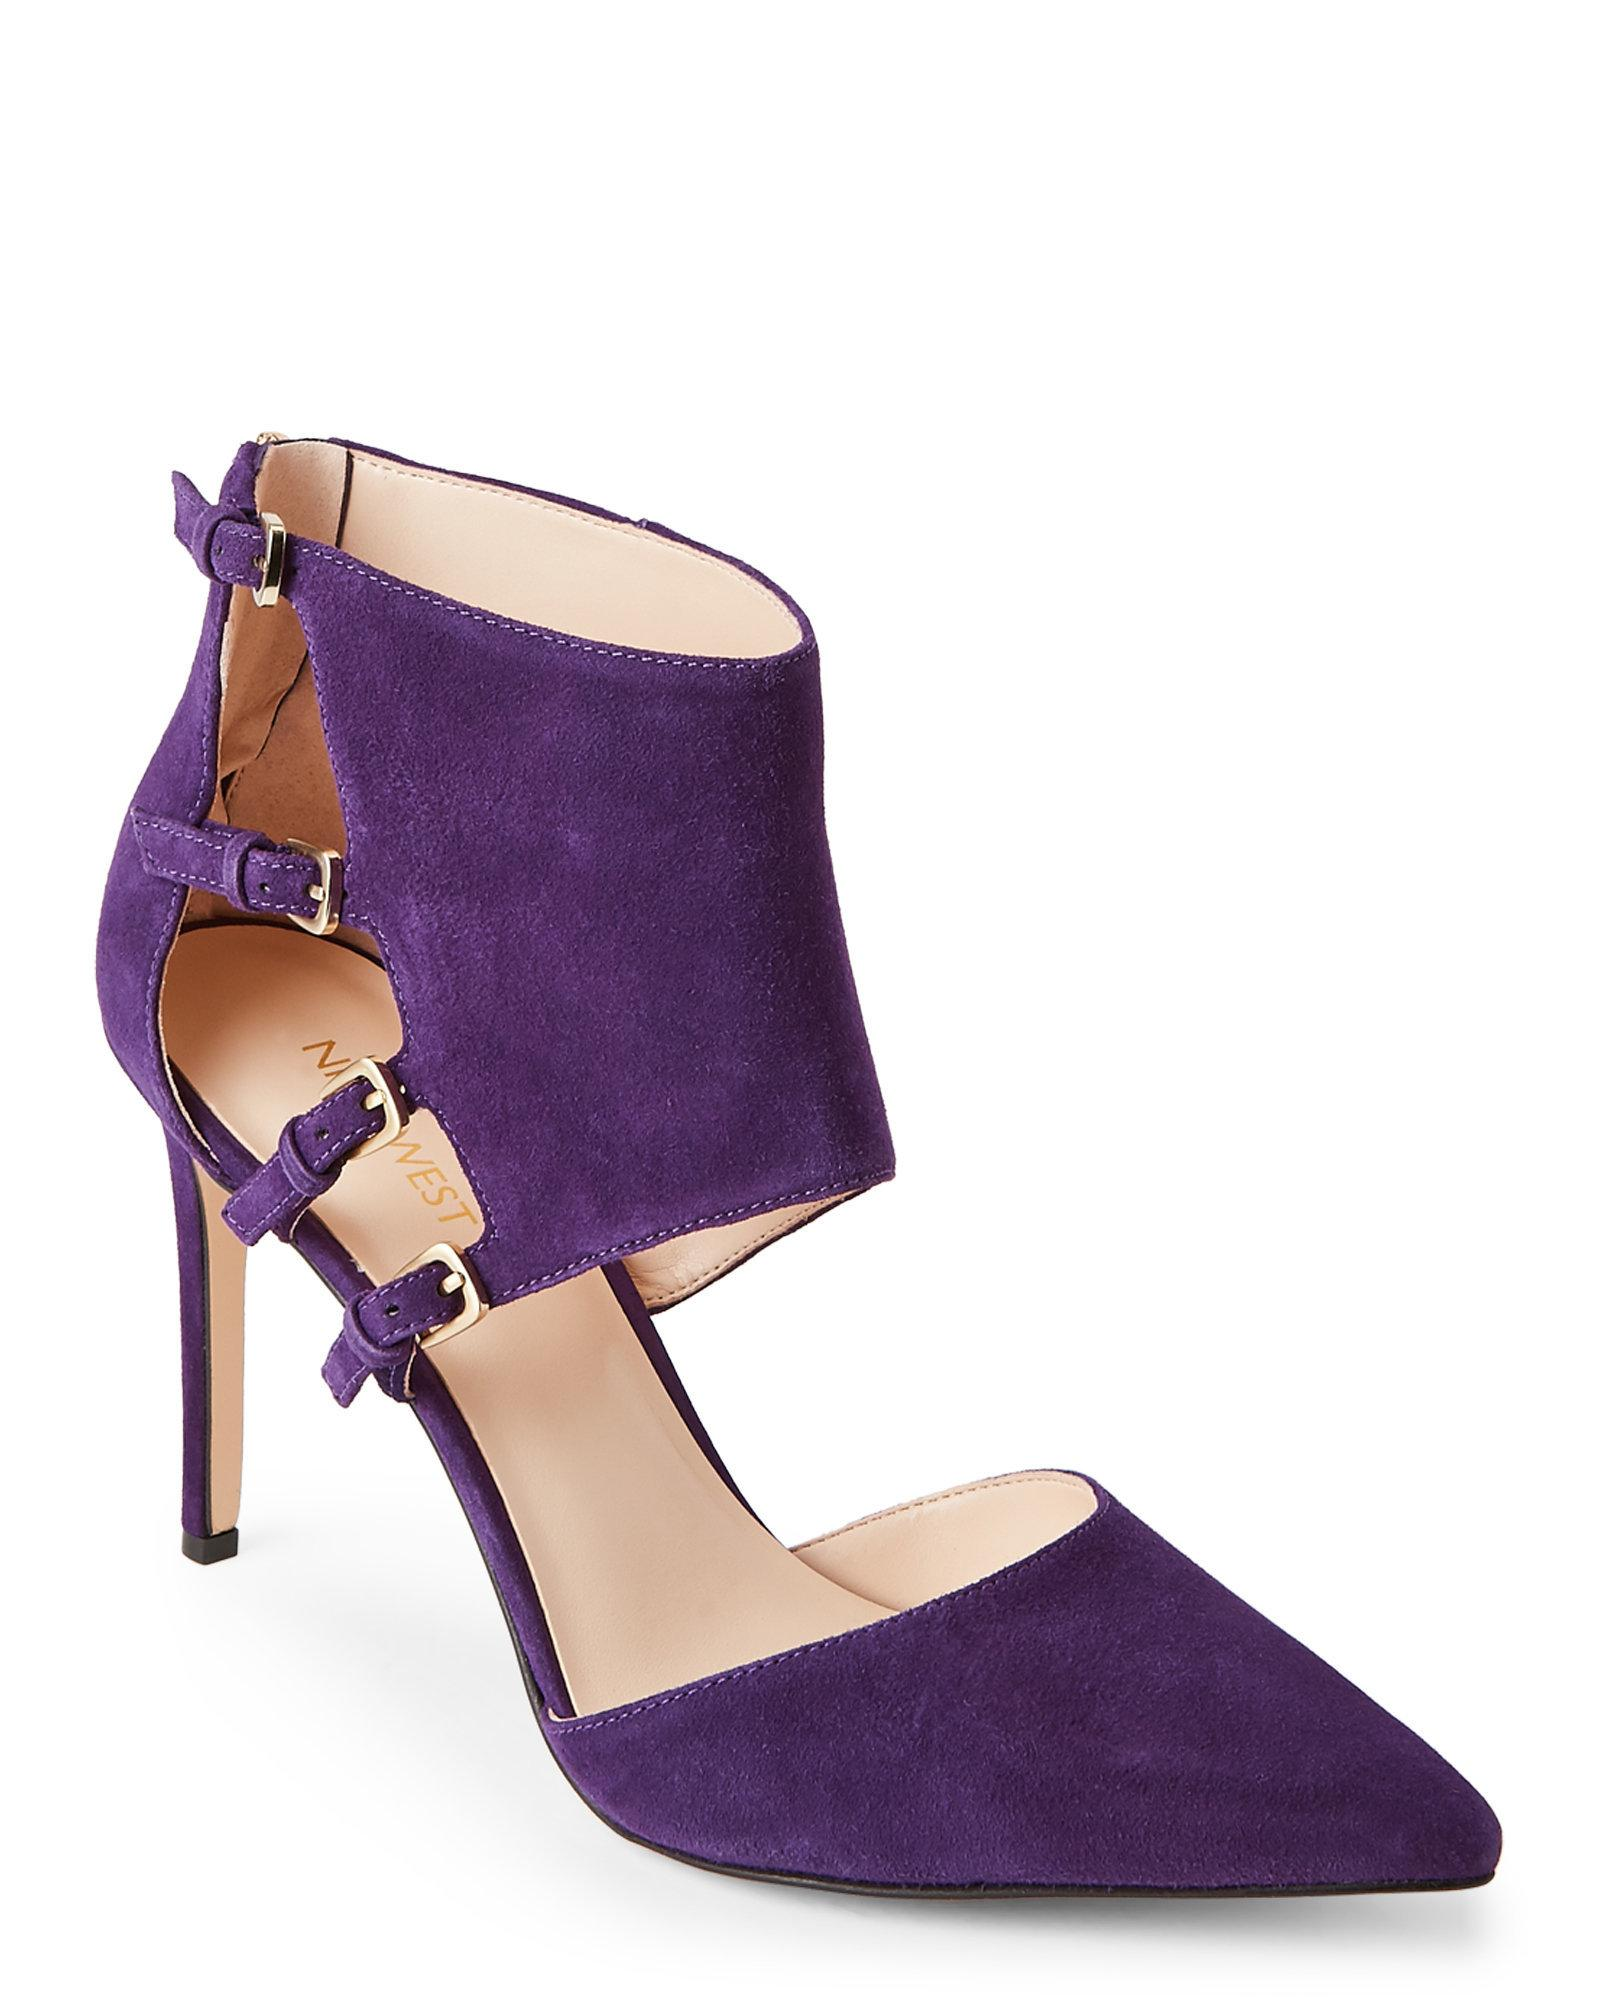 Lyst - Nine west Purple Trust Me Buckled Pointed Toe Pumps in Purple